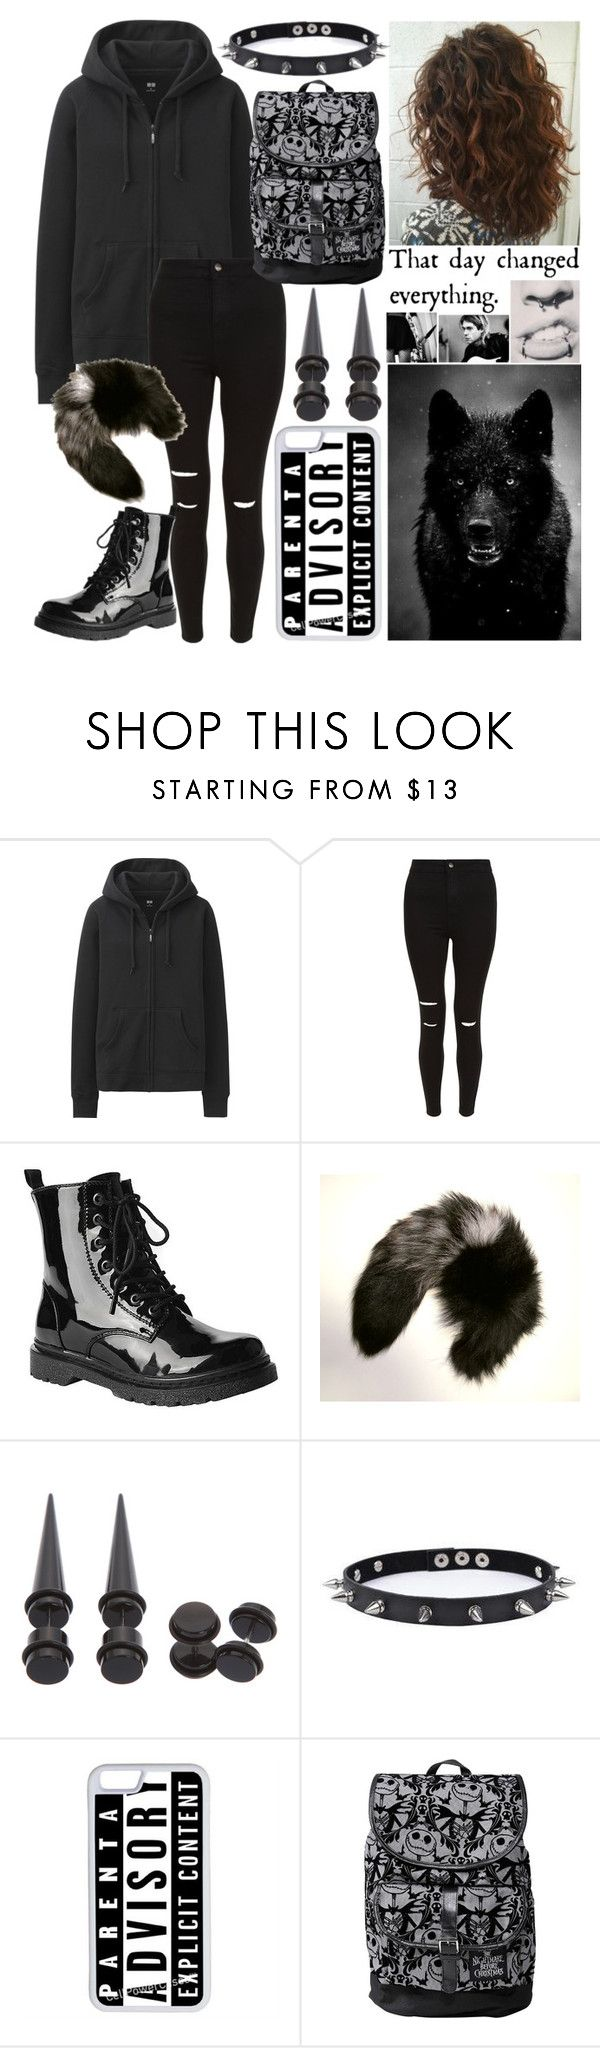 """🔪~ i'll dot your i's and cross your fvcking t's"" by whisperwolf22 ❤ liked on Polyvore featuring Uniqlo, New Look, Gia-Mia, Maison Kitsuné, Trend Cool, CellPowerCases and Disney"